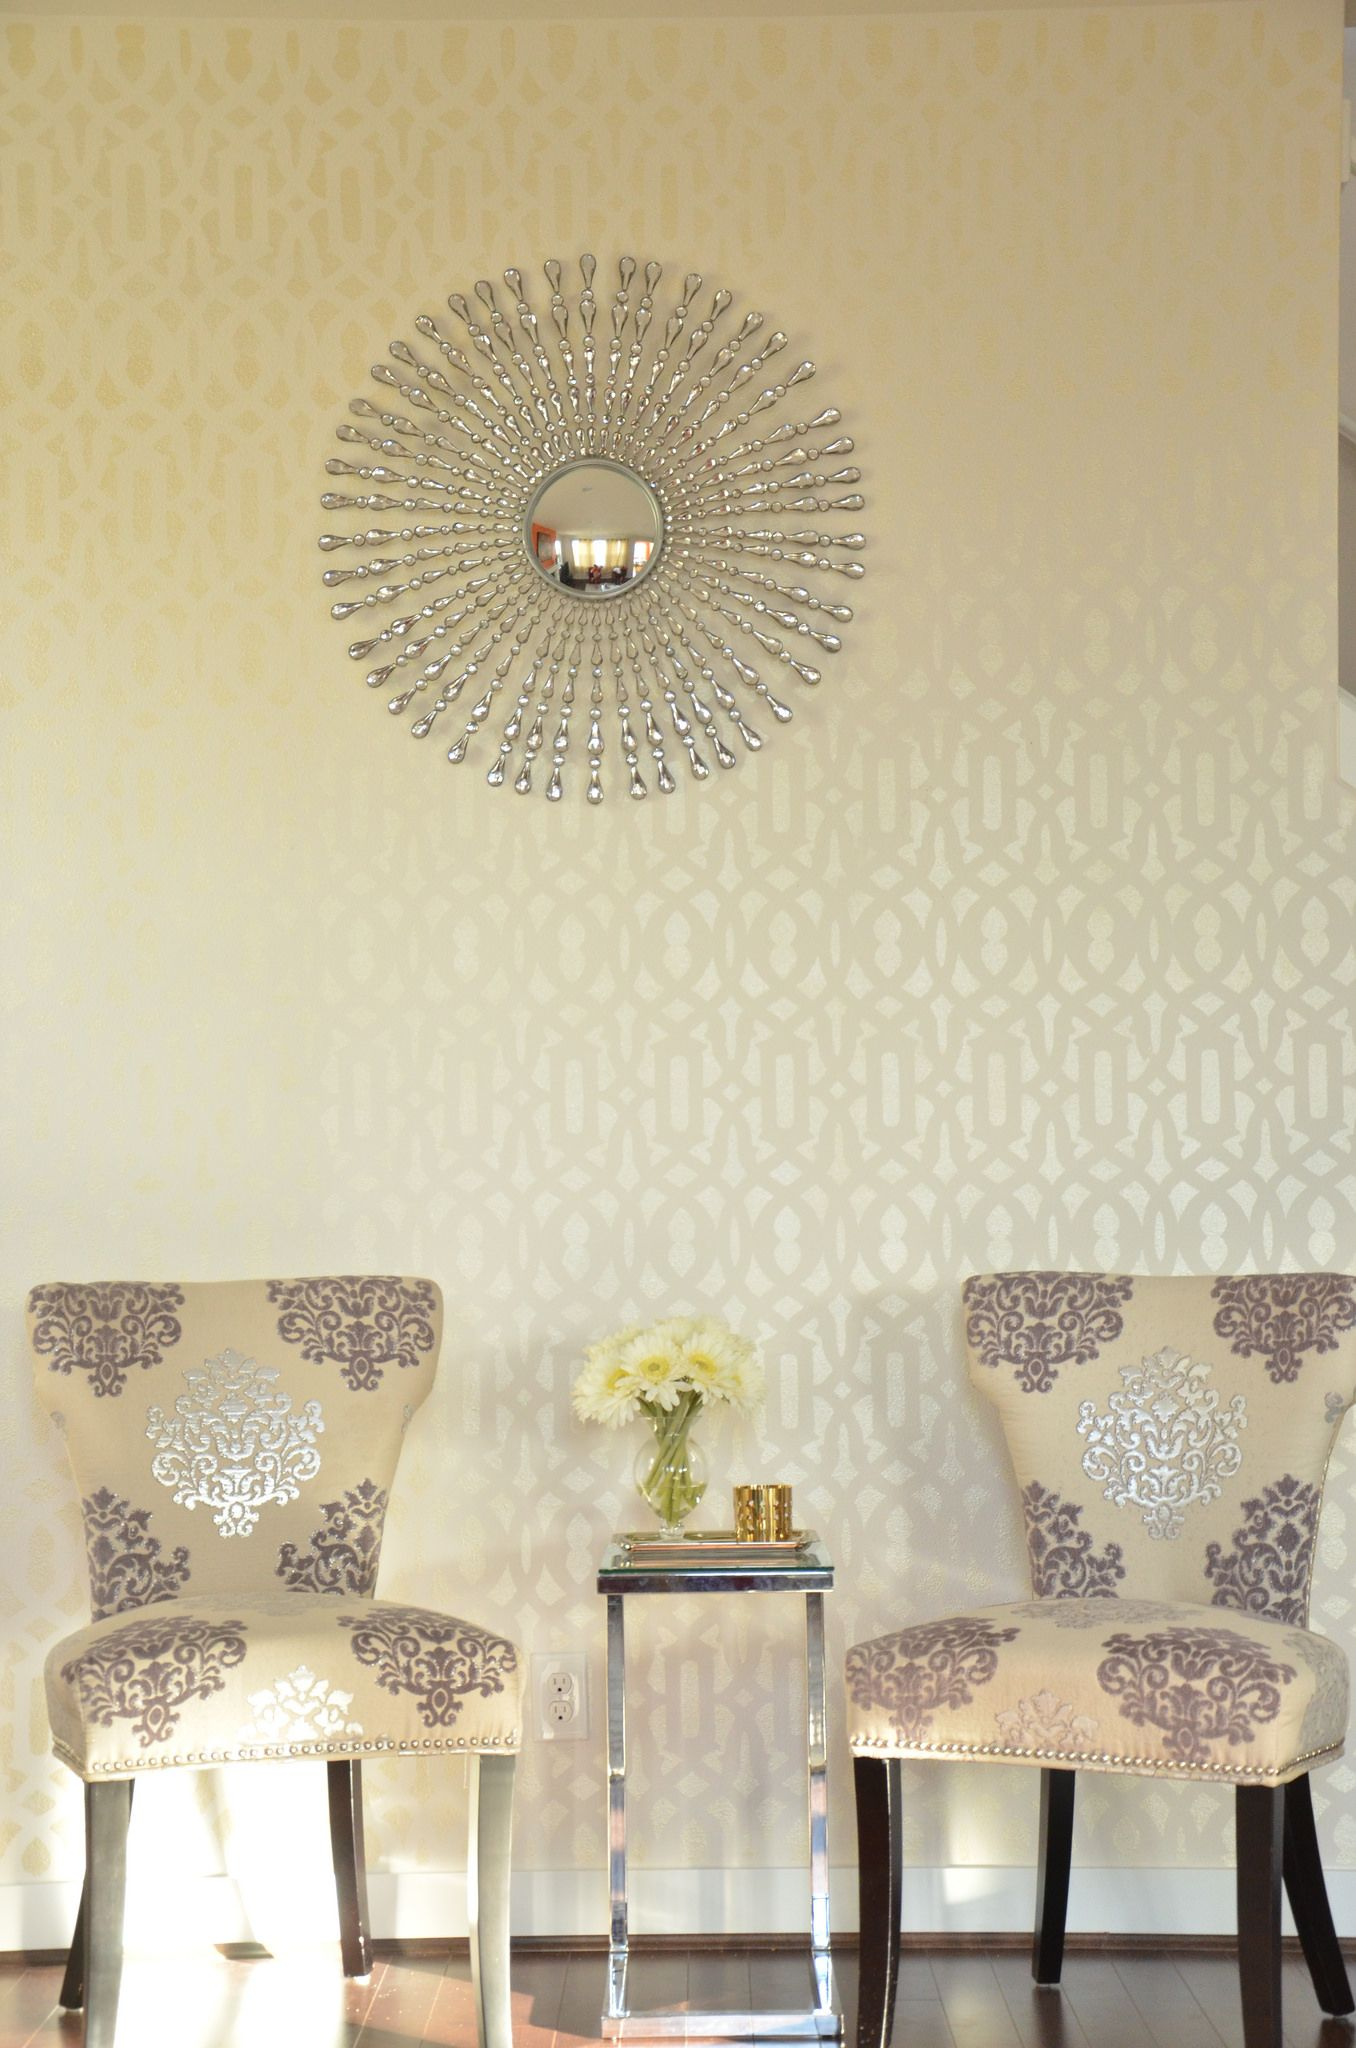 A diy stenciled accent wall using the trellis allover stencil in a diy stenciled accent wall using the trellis allover stencil in ralph lauren metallic gold amipublicfo Choice Image